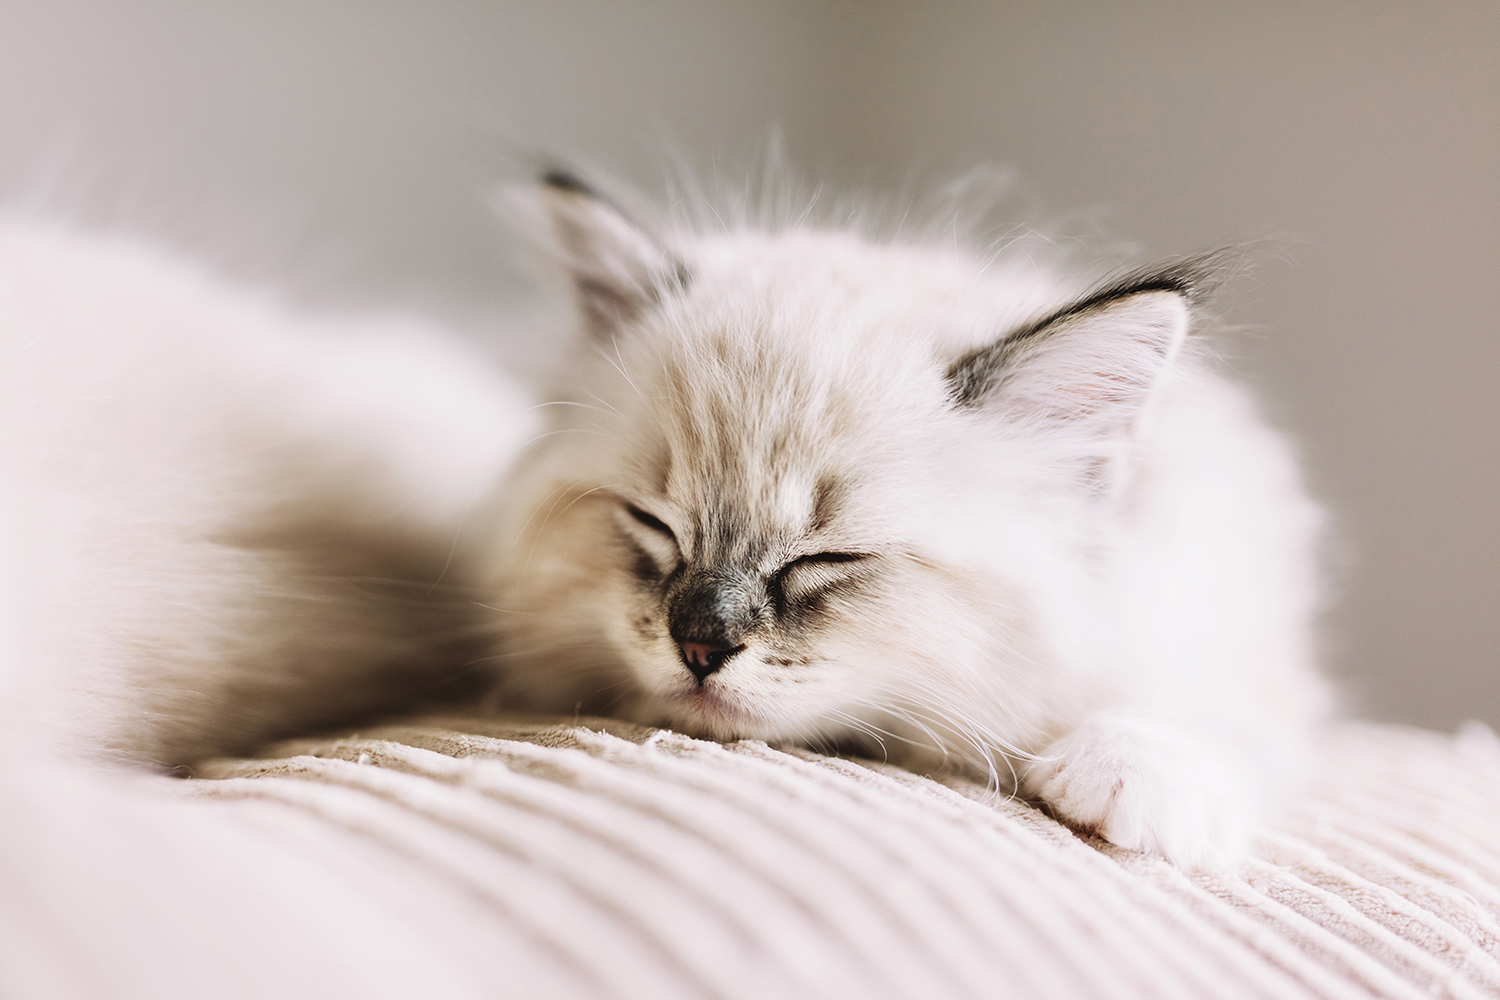 ragdoll kitten asleep on bed